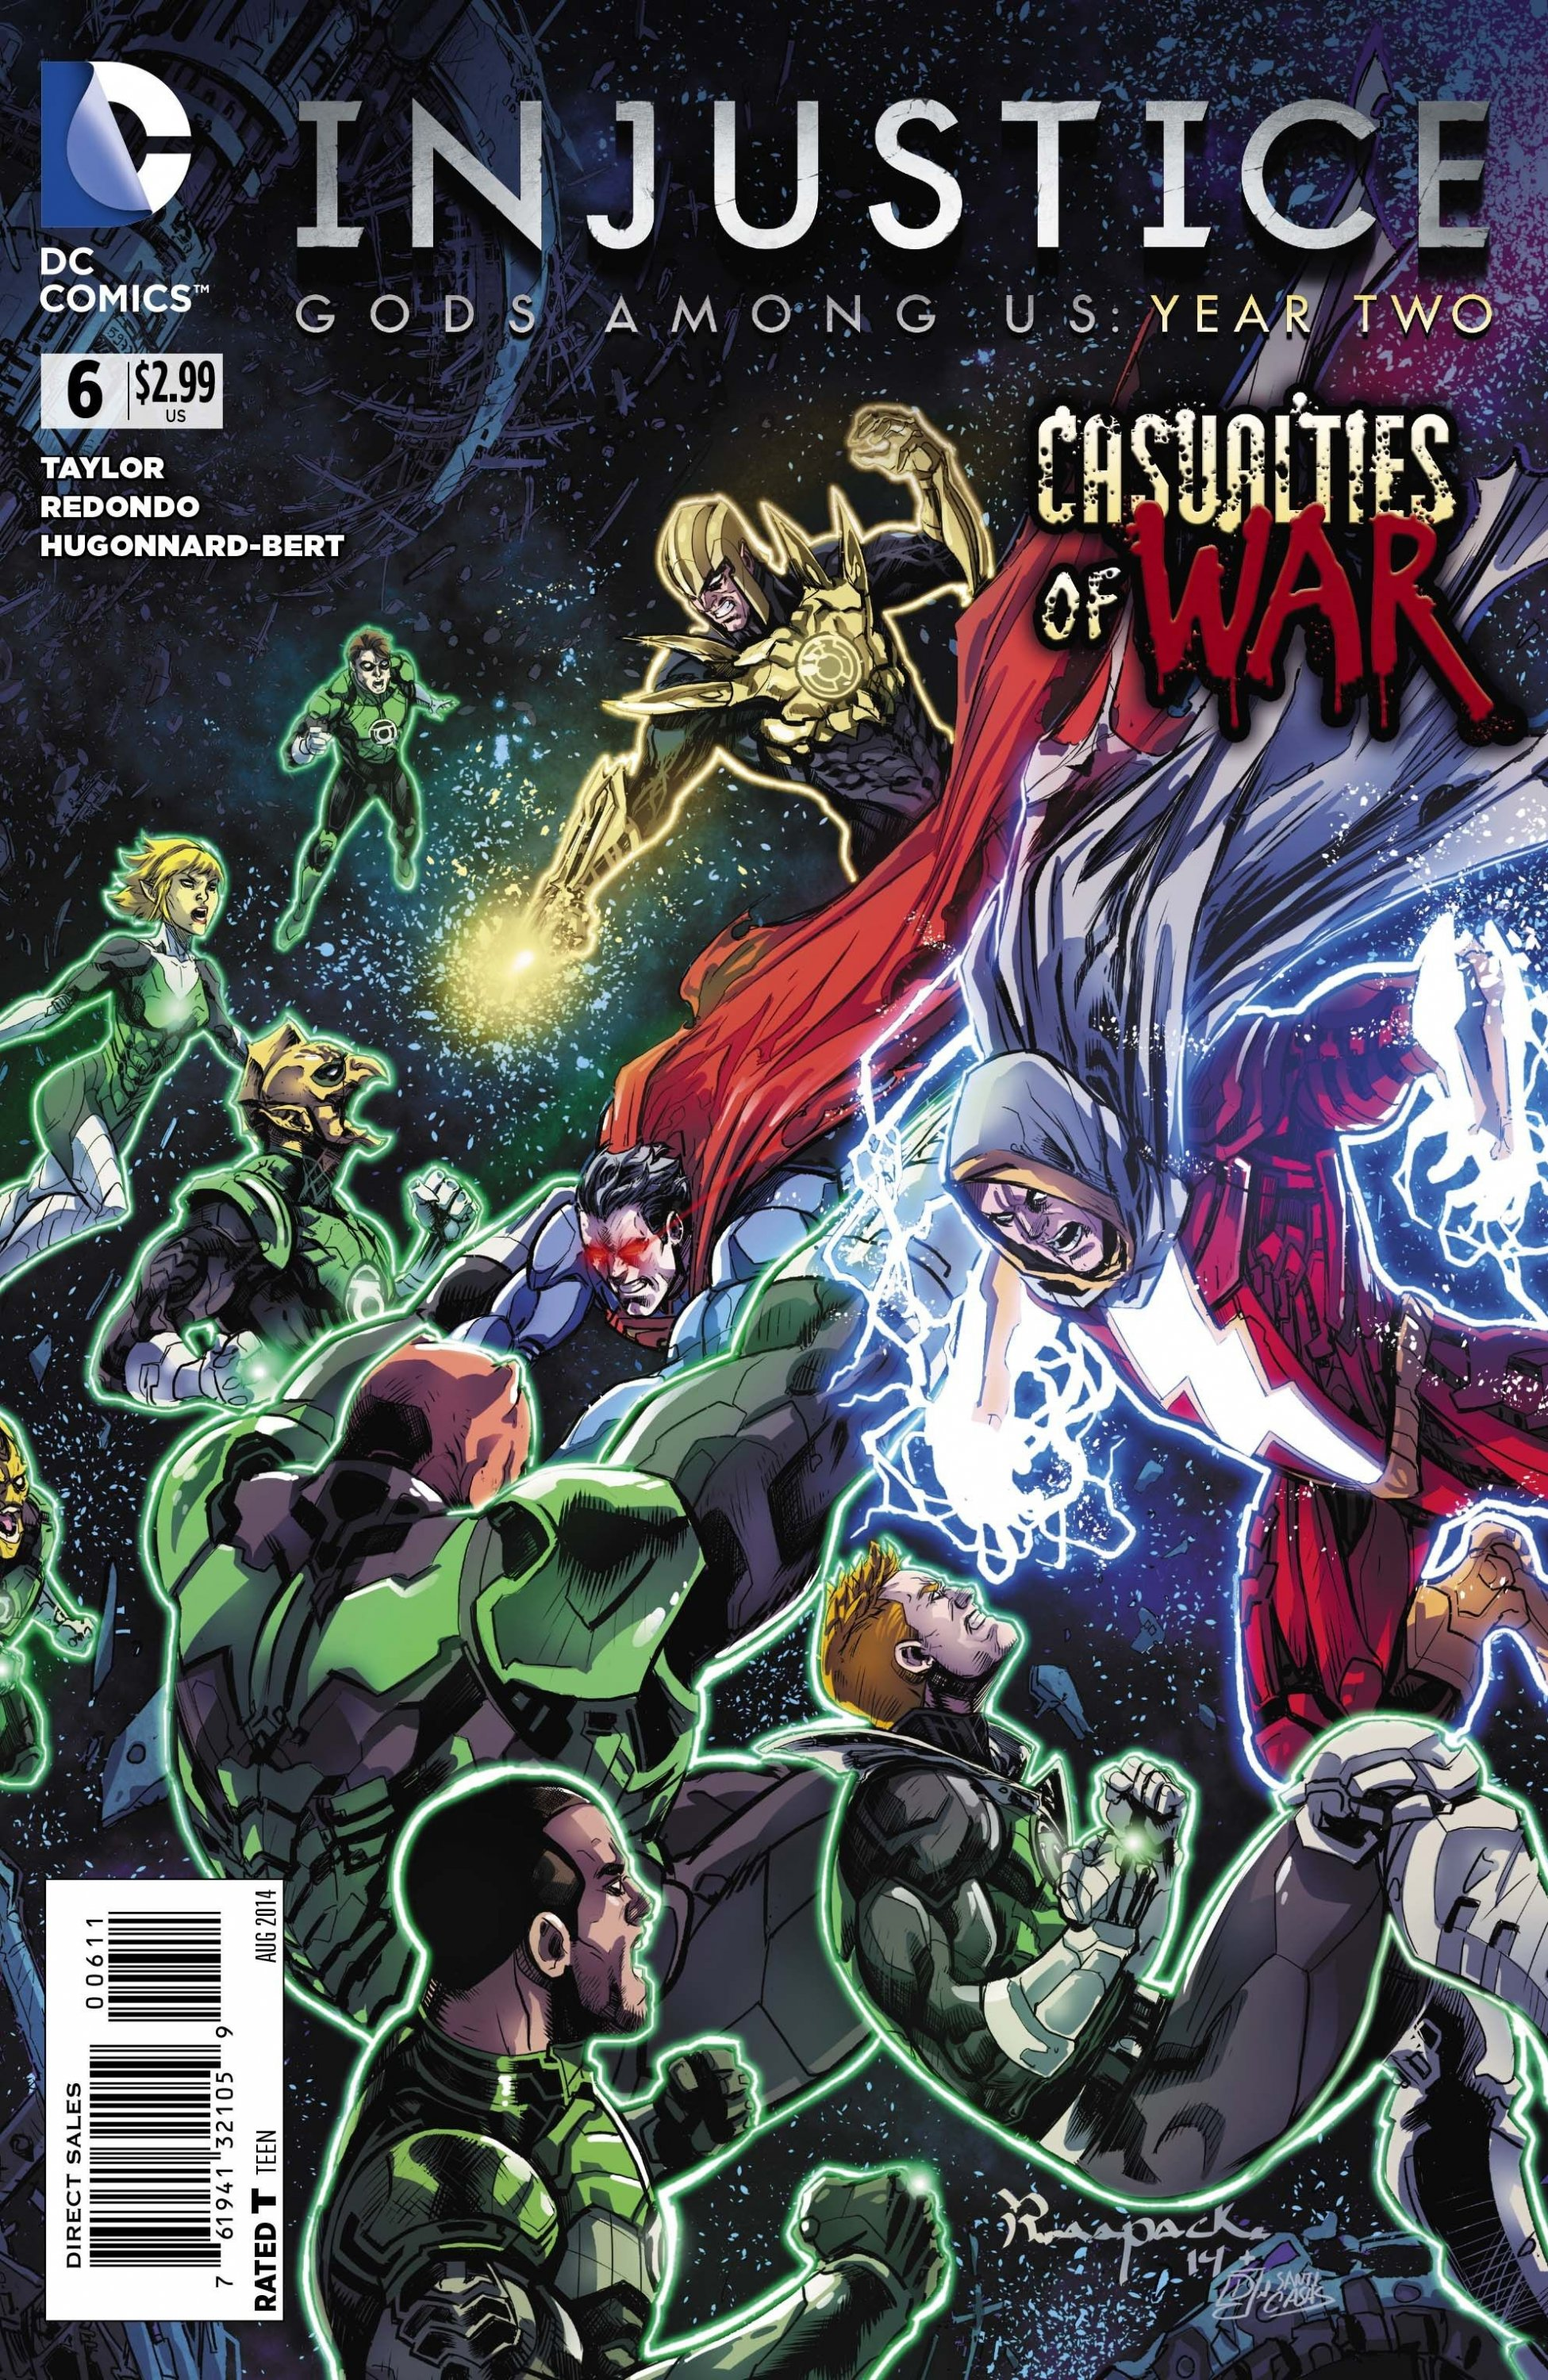 Injustice - Gods Among Us: Year Two 006 (August 2014)